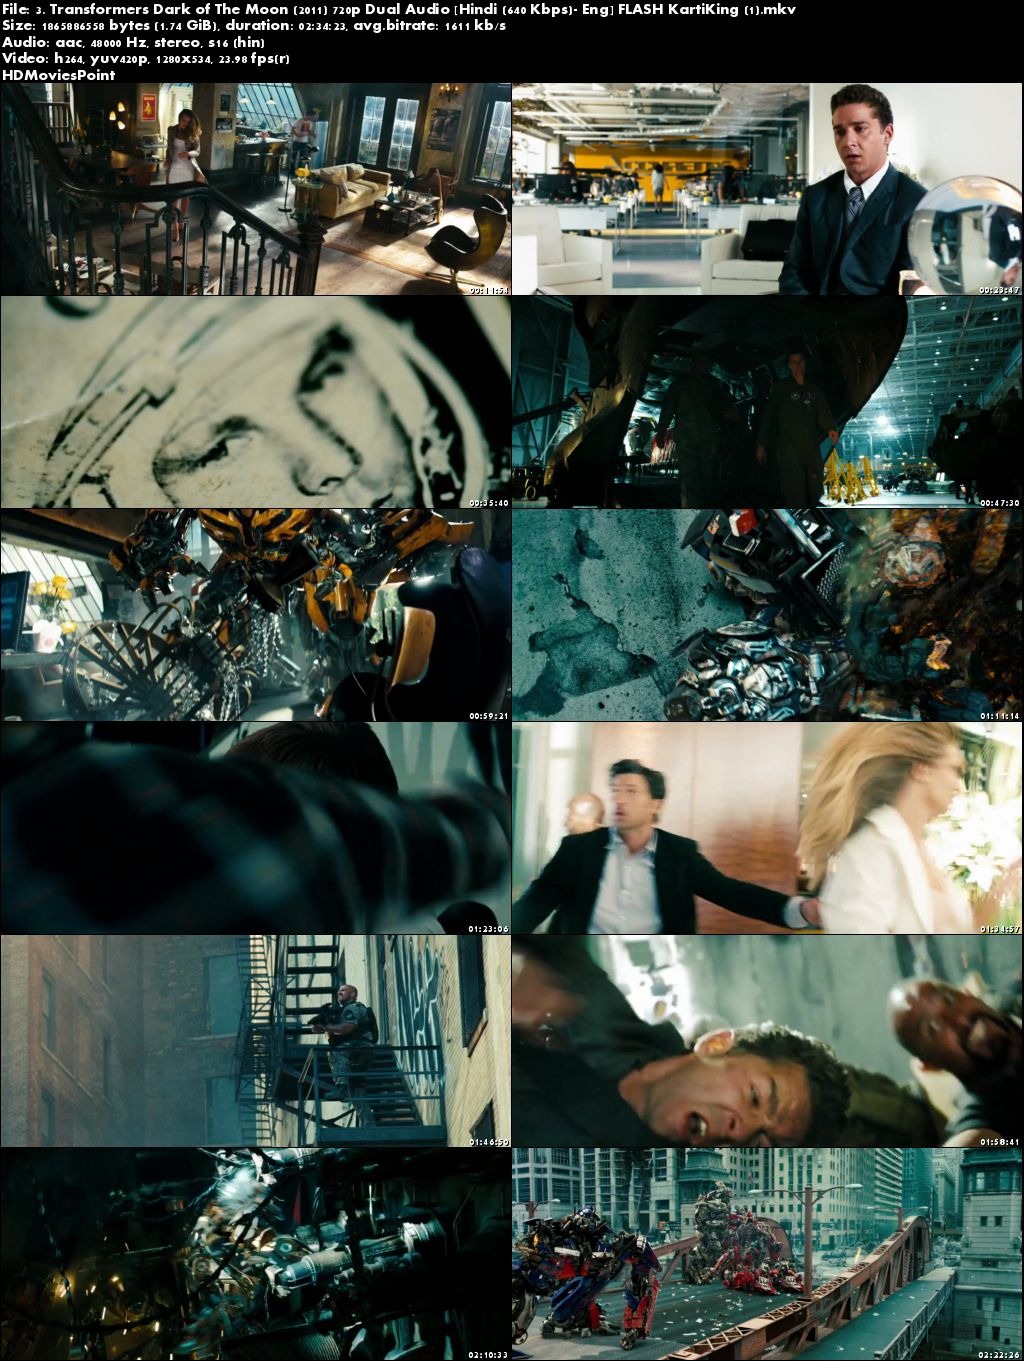 Screen Shots Transformers: Dark of the Moon 2011 Full Movie Download Hindi Dubbed